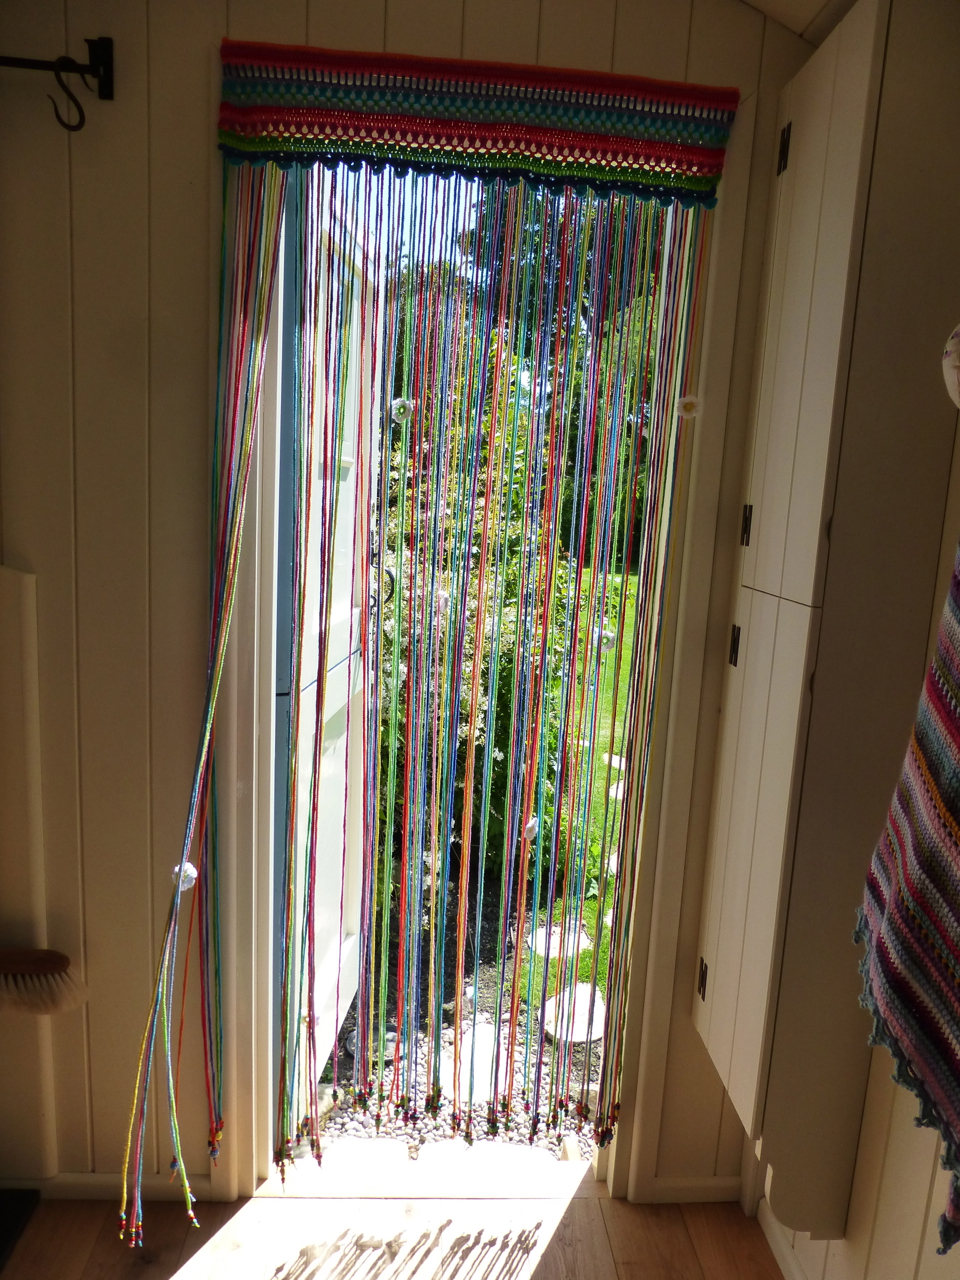 You To Find These Kinds Of Curtains In The Doorways S Sometimes This Country Not Crochet Ones Usually Just Thin Lengths Plastic